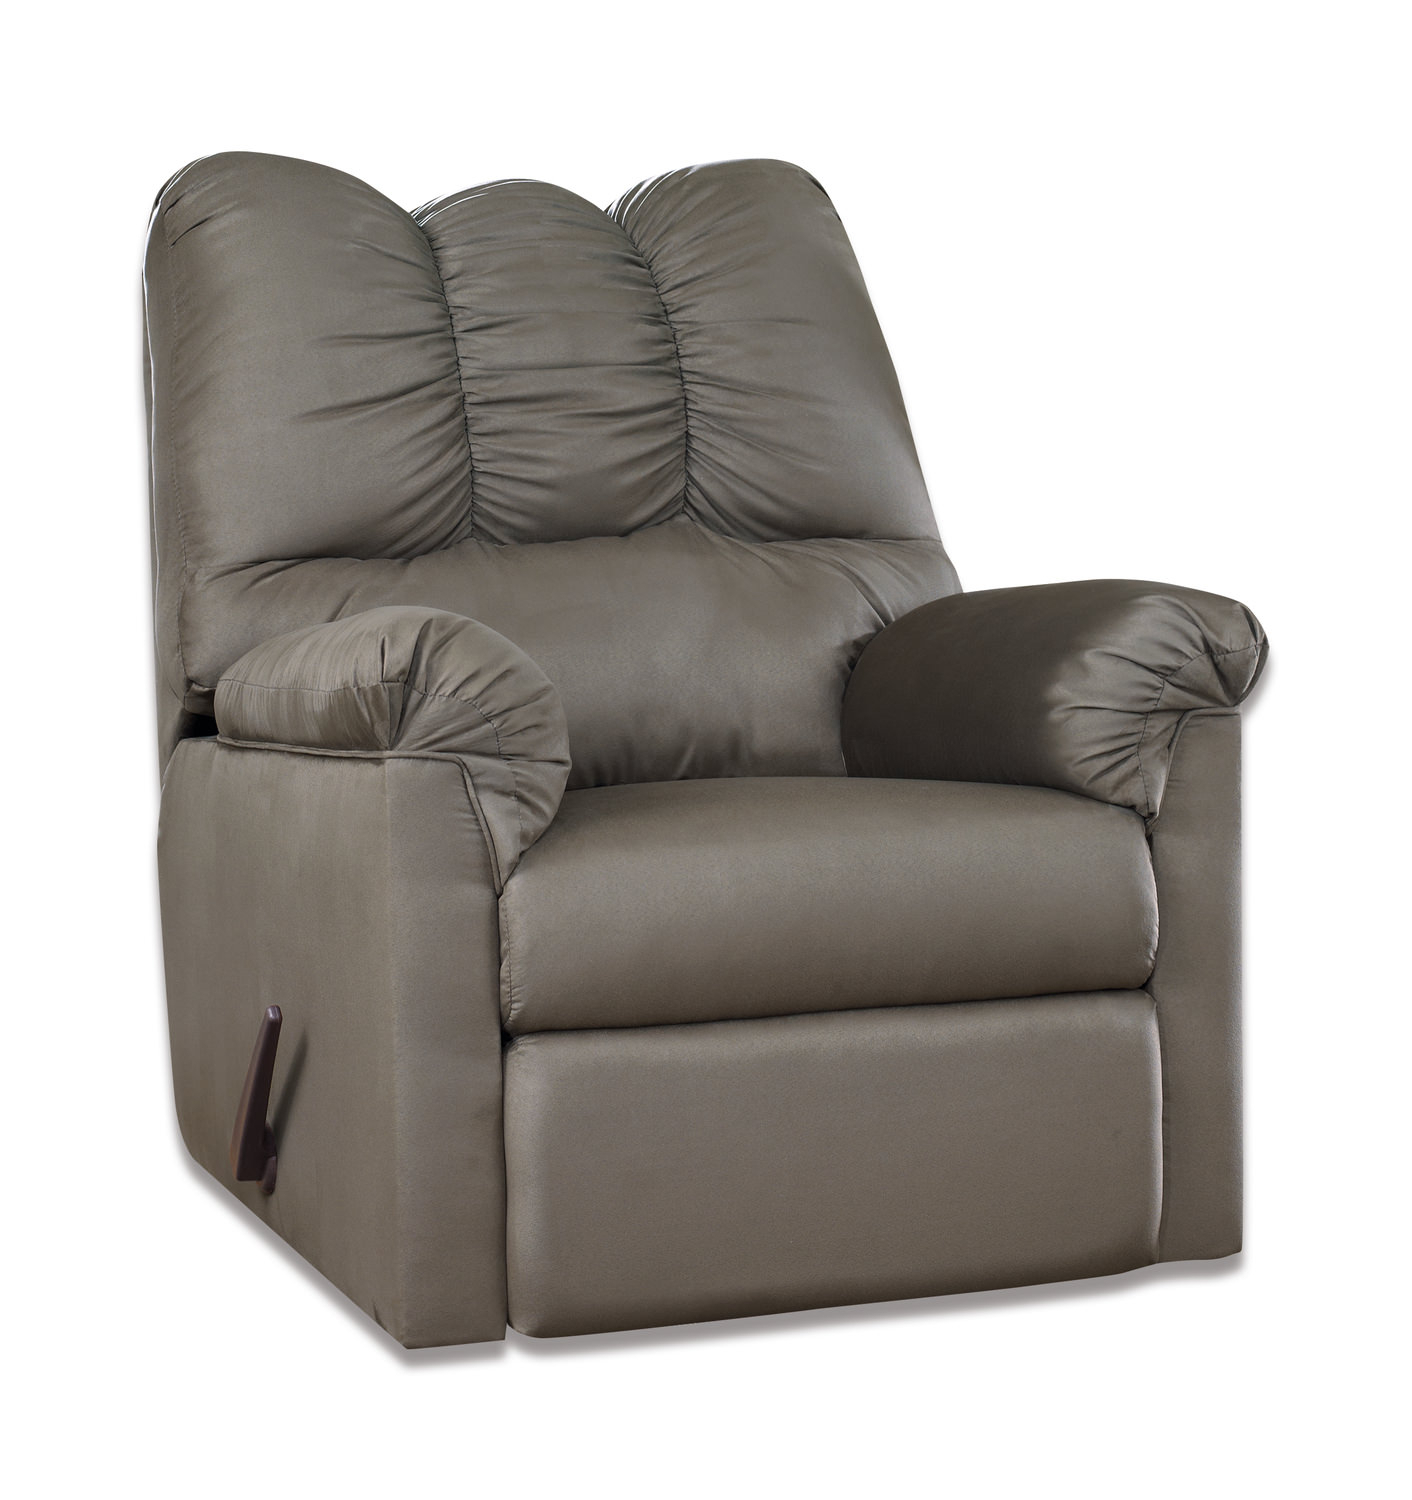 Recliners – Leather, Rocker & Swivel – Hom Furniture Throughout Theo Ii Swivel Chairs (Image 13 of 20)